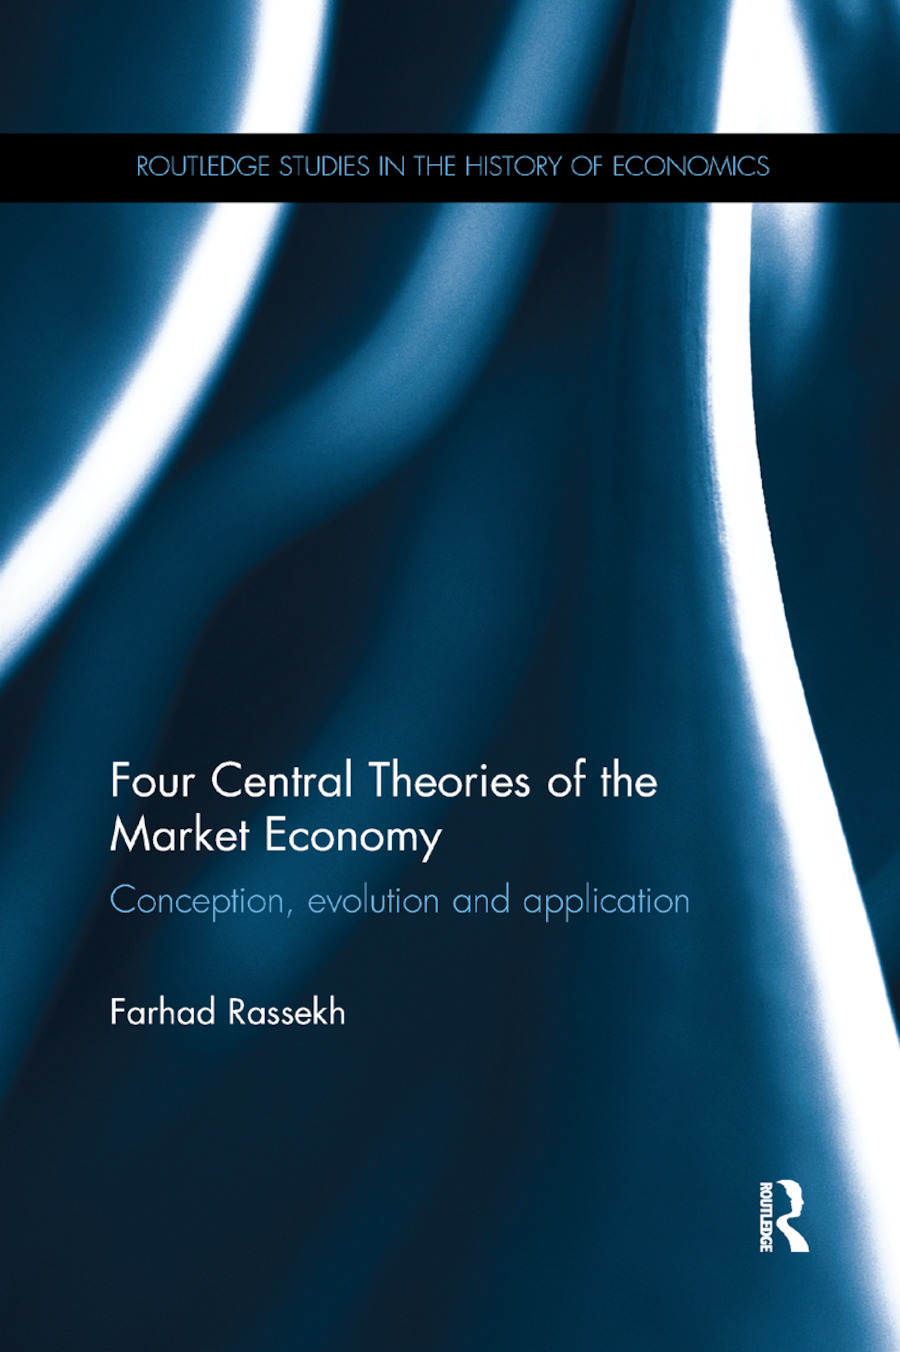 Four Central Theories of the Market Economy: Conception, evolution and application book cover